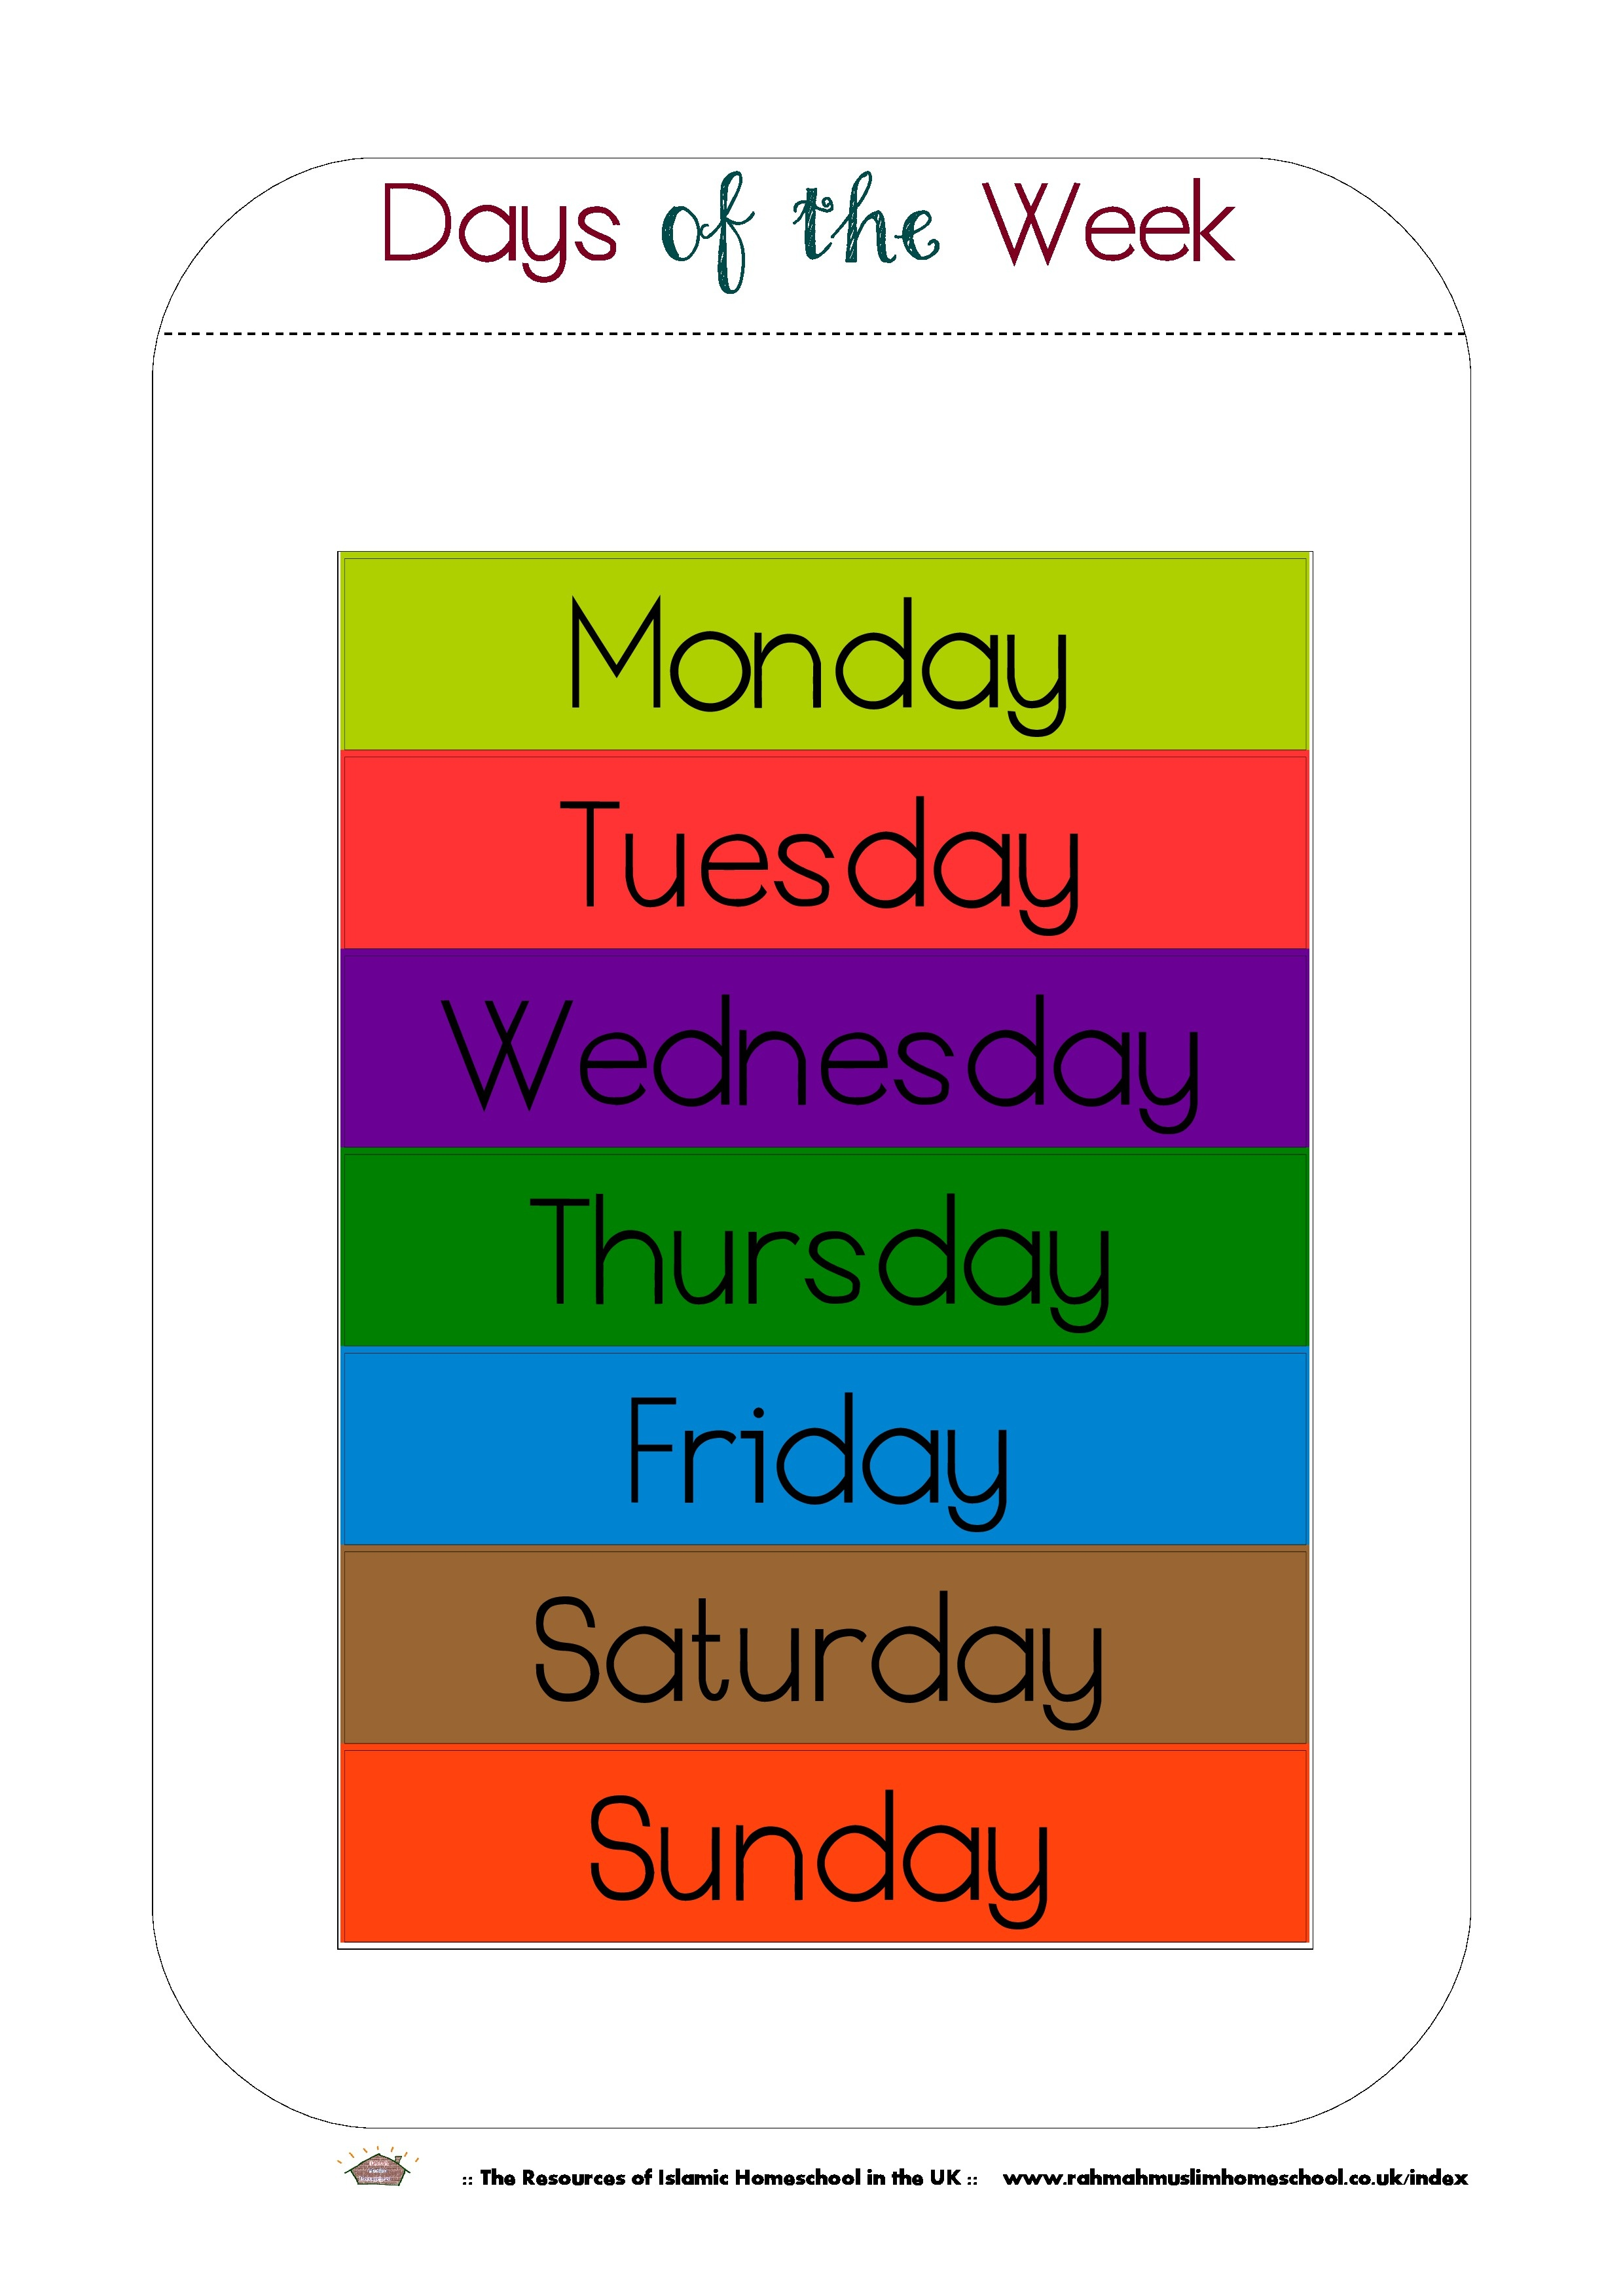 Free Printable Days Of The Week Workbook And Poster | The Resources - Free Printable Days Of The Week